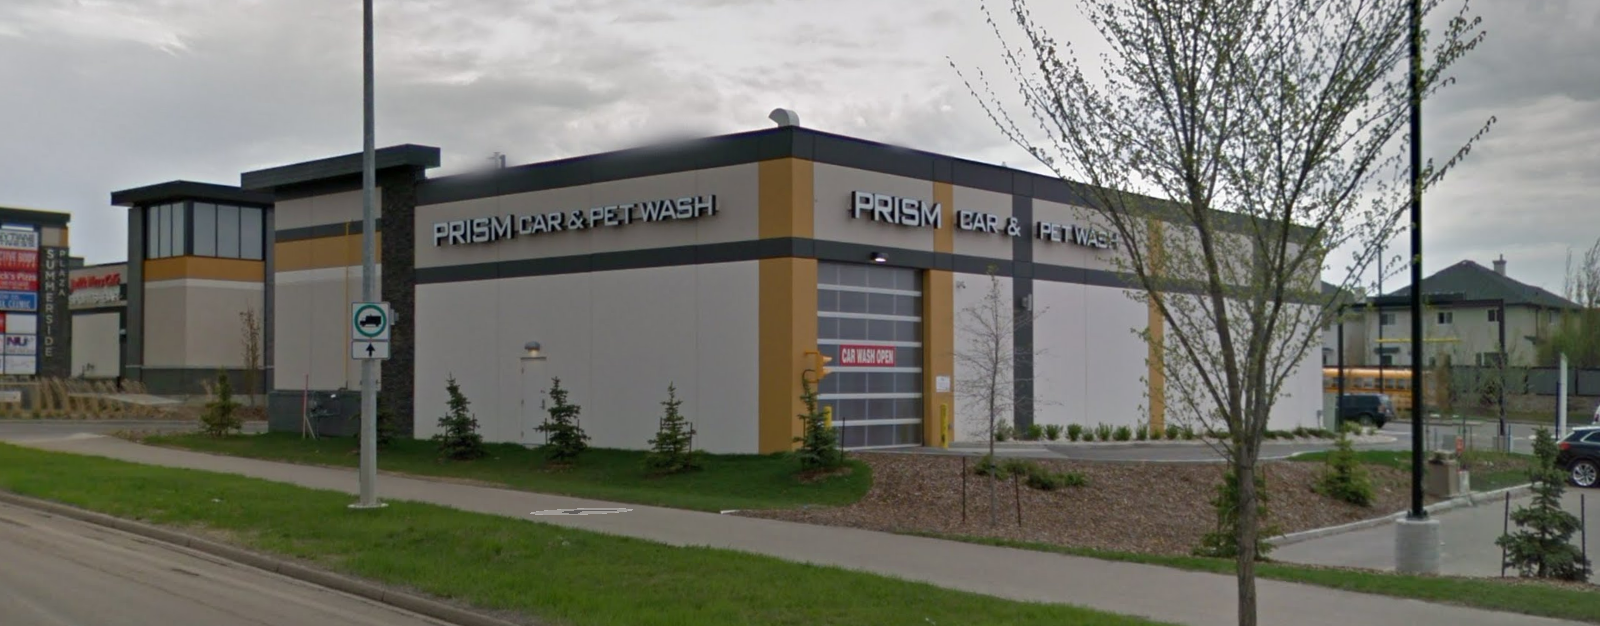 Prism Car & Pet Wash  Located at 6995 Ellerslie Rd SW, Edmonton AB.  A 8 bay car wash.